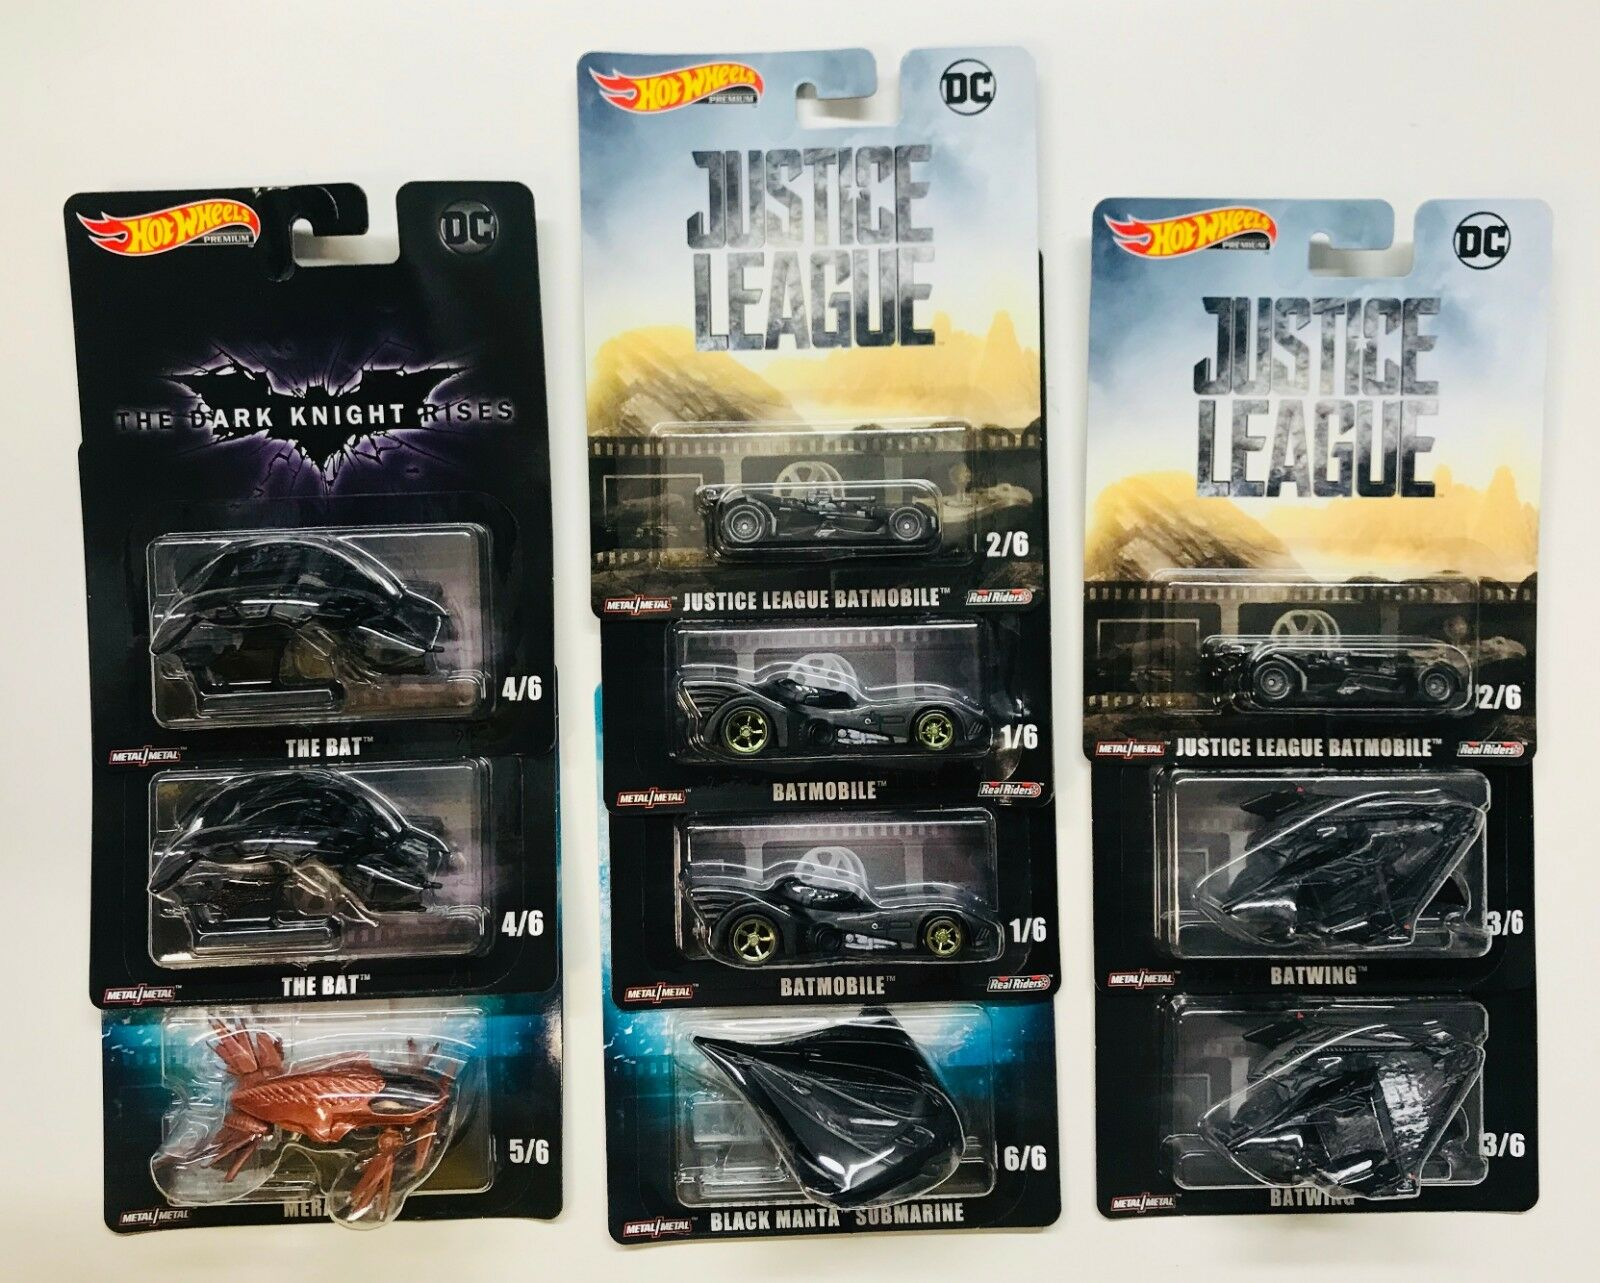 Hot Wheels Retro Entertainment 2019 L Case Justice Justice Justice Batmobile Batwing 10 CARS 19103e